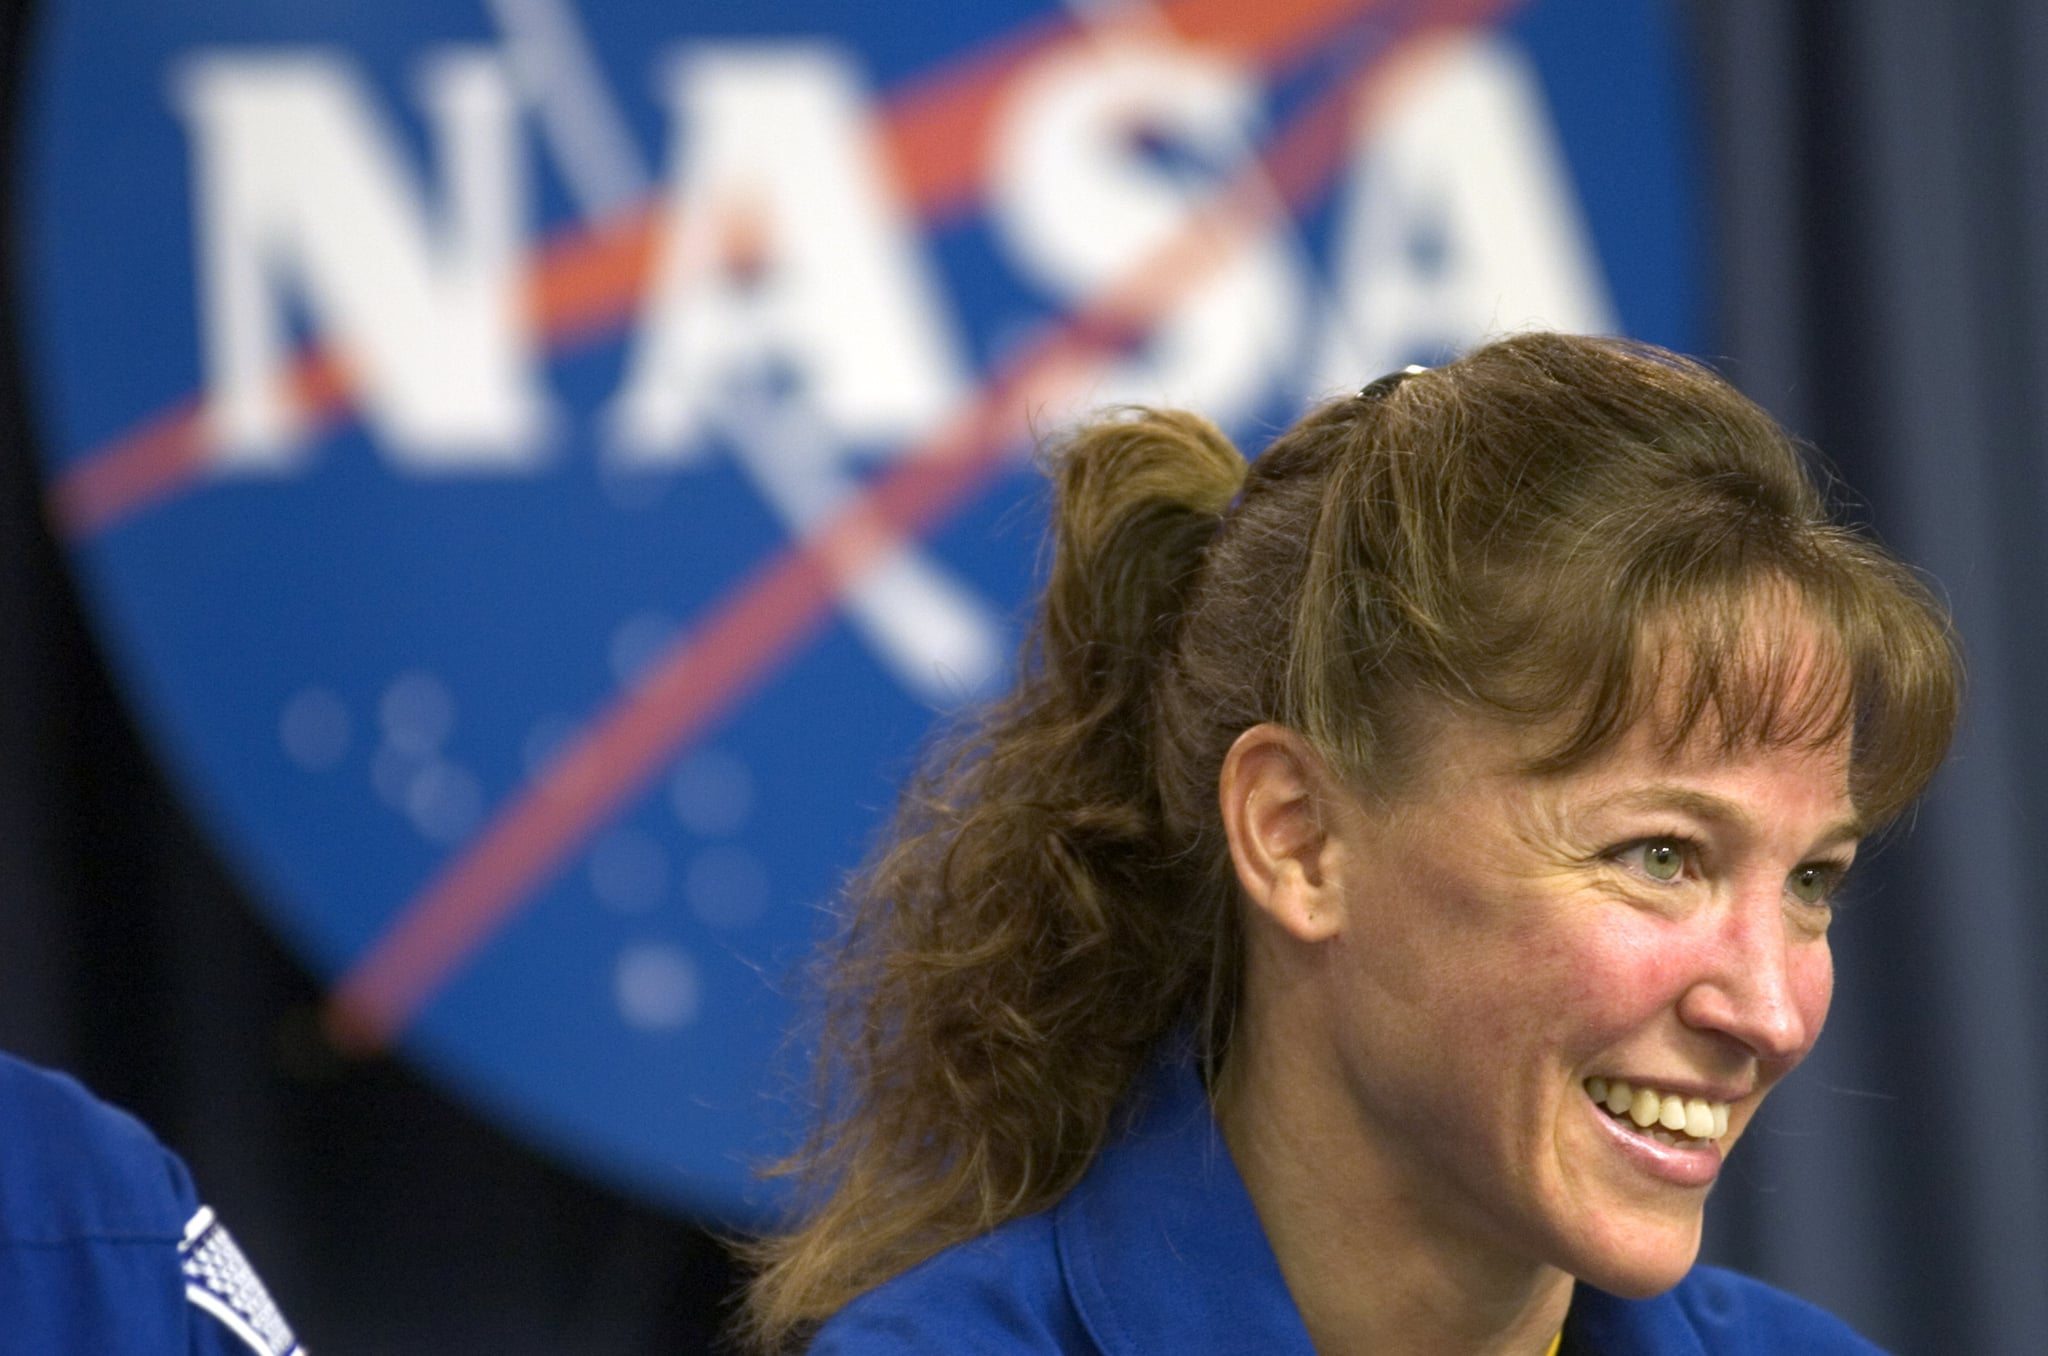 KENNEDY SPACE CENTER, FL - JULY 17:  Mission Specialist Lisa Nowak speaks at a post mission press conference July 17, 2006 at Kennedy Space Centre in Florida. Discussed was the progress the mission had made on the completion of the International Space Station.  (Photo by Philip Andrews/Getty Images)